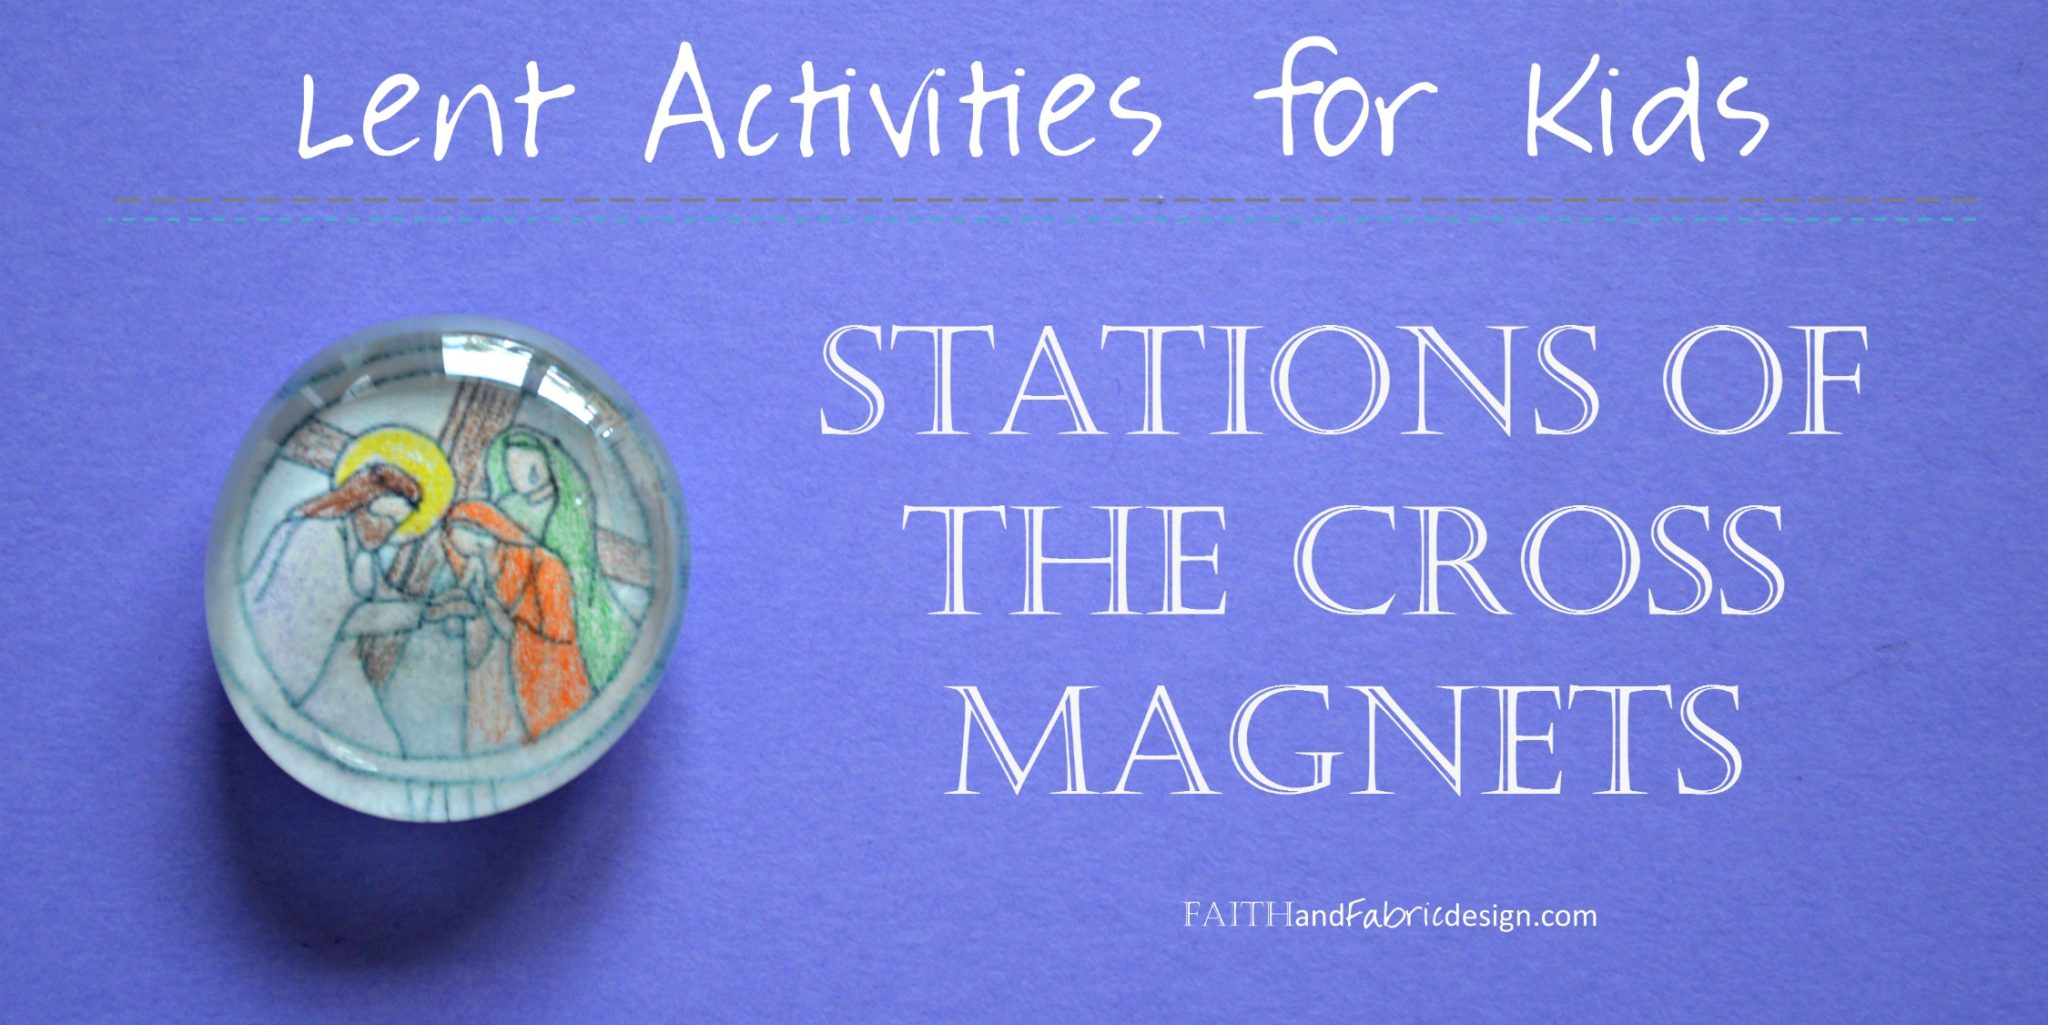 Activity Stations Of The Cross Magnets Faith And Fabric